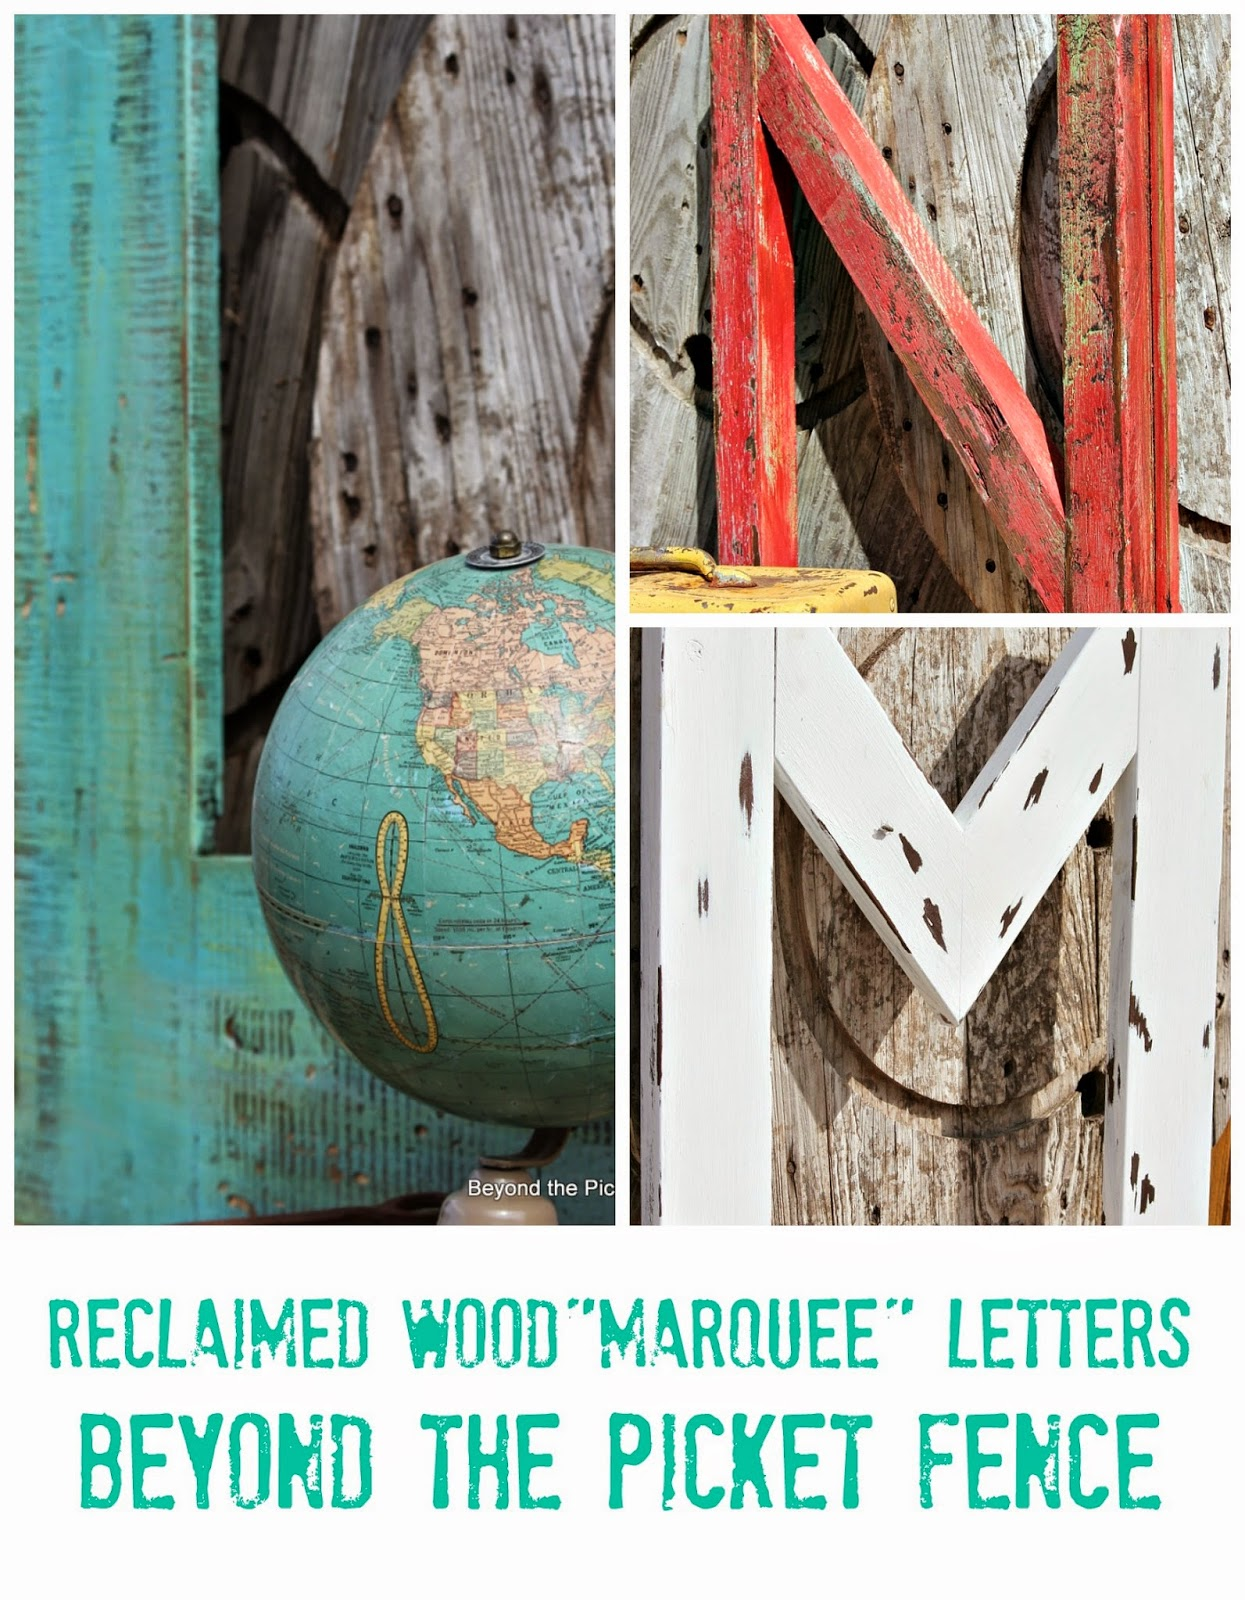 Reclaimed Wood Marquee Letters http://bec4-beyondthepicketfence.blogspot.com/